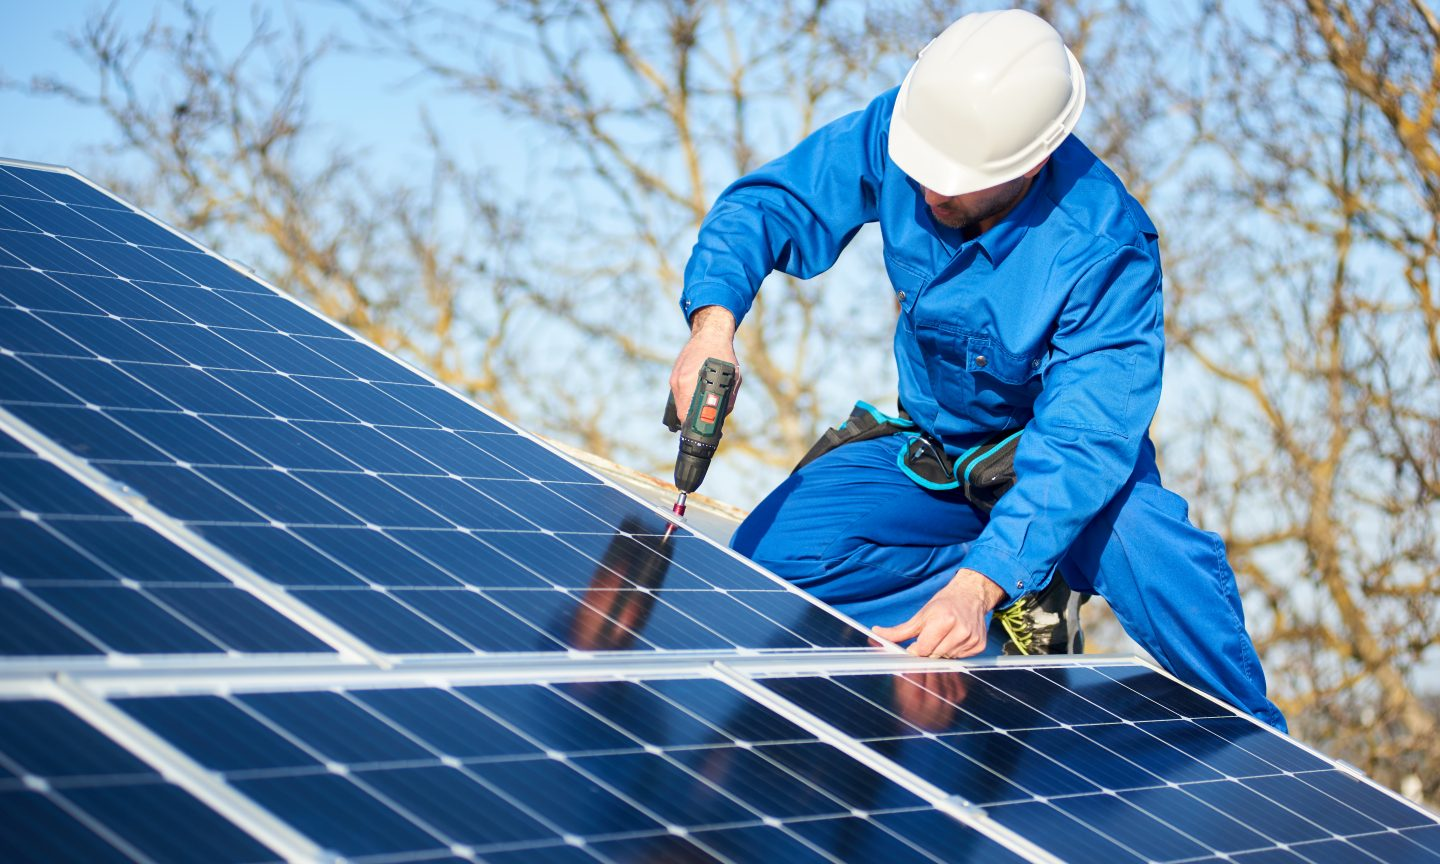 What Do Solar Panels Cost and Are They Worth It? - NerdWallet